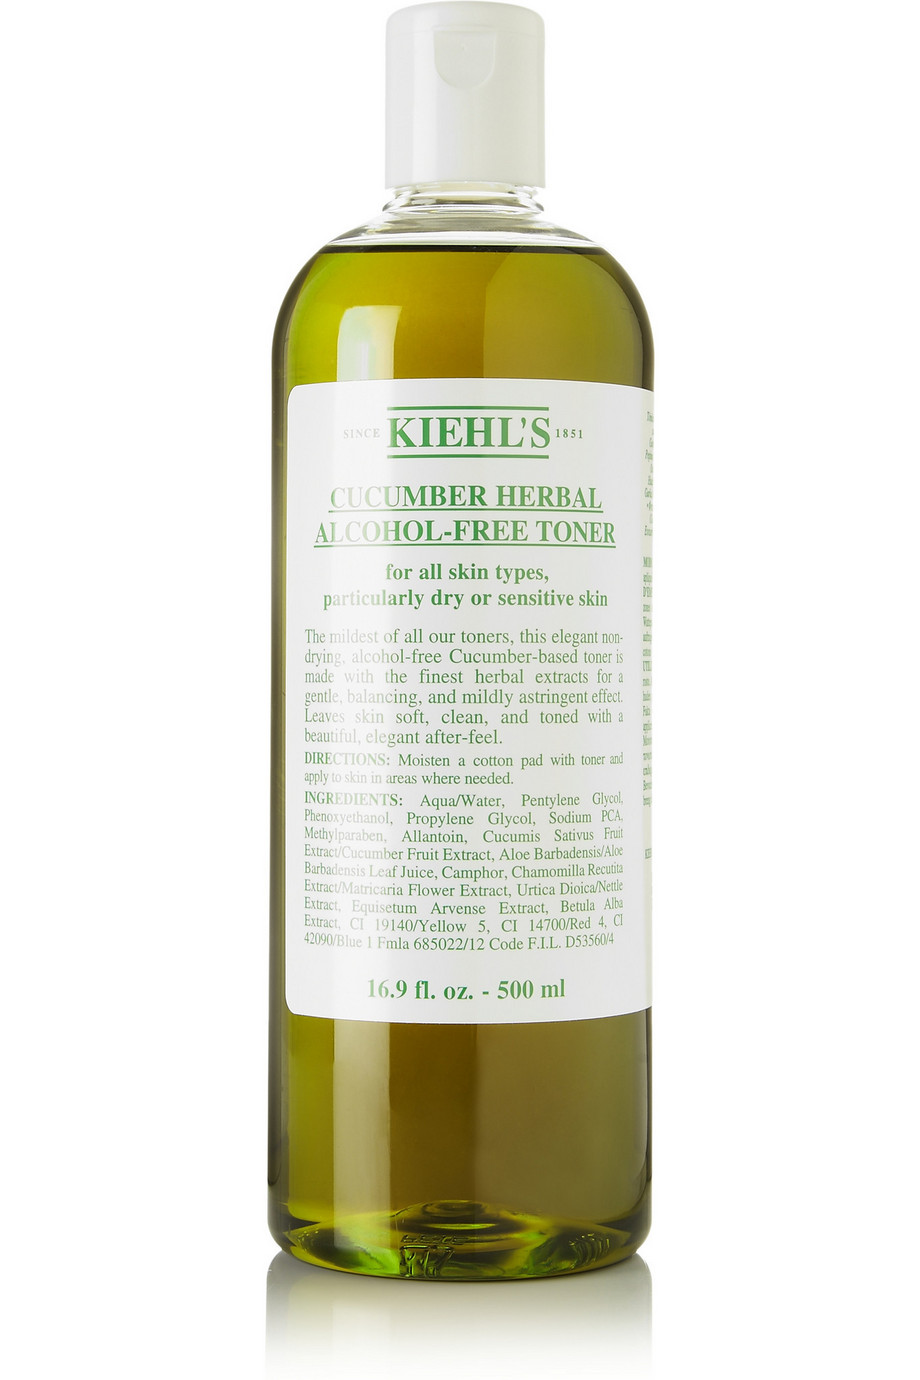 Cucumber Herbal Alcohol-Free Toner, 500ml, by Kiehl's Since 1851